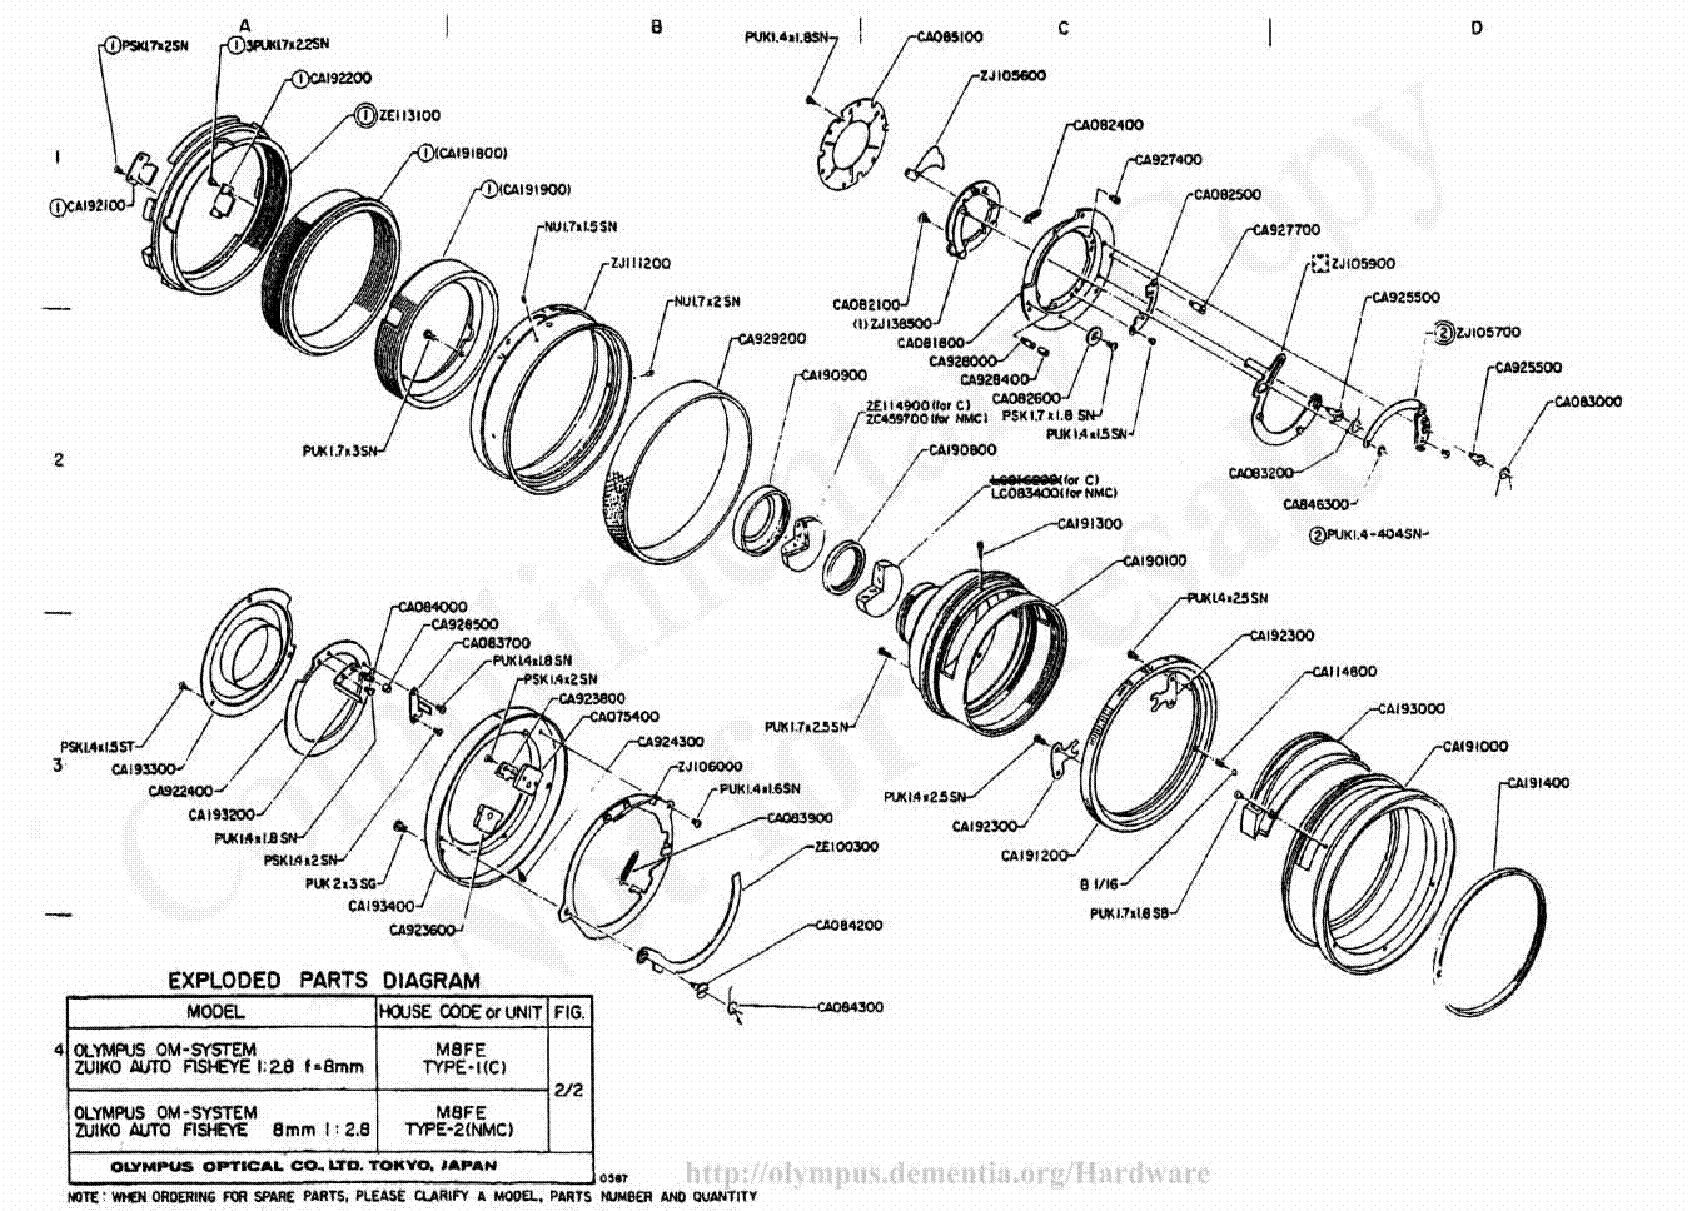 OLYMPUS 8MM F2.8 EXPLODED PARTS DIAGRAM Service Manual